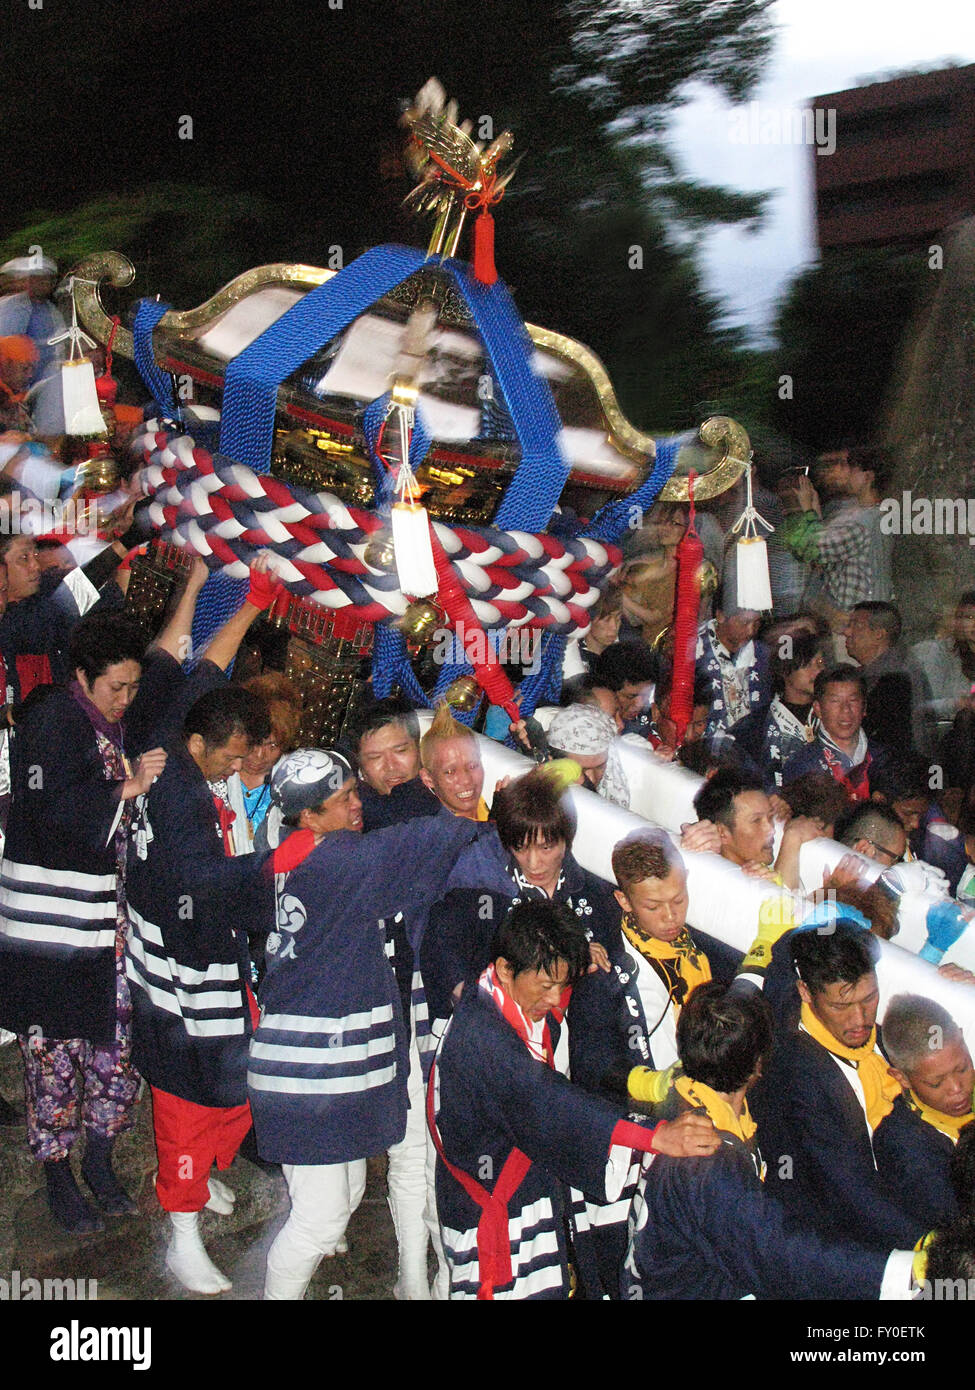 festival participants carry Mikoshi down stairway Matsuyama Japan - Stock Image